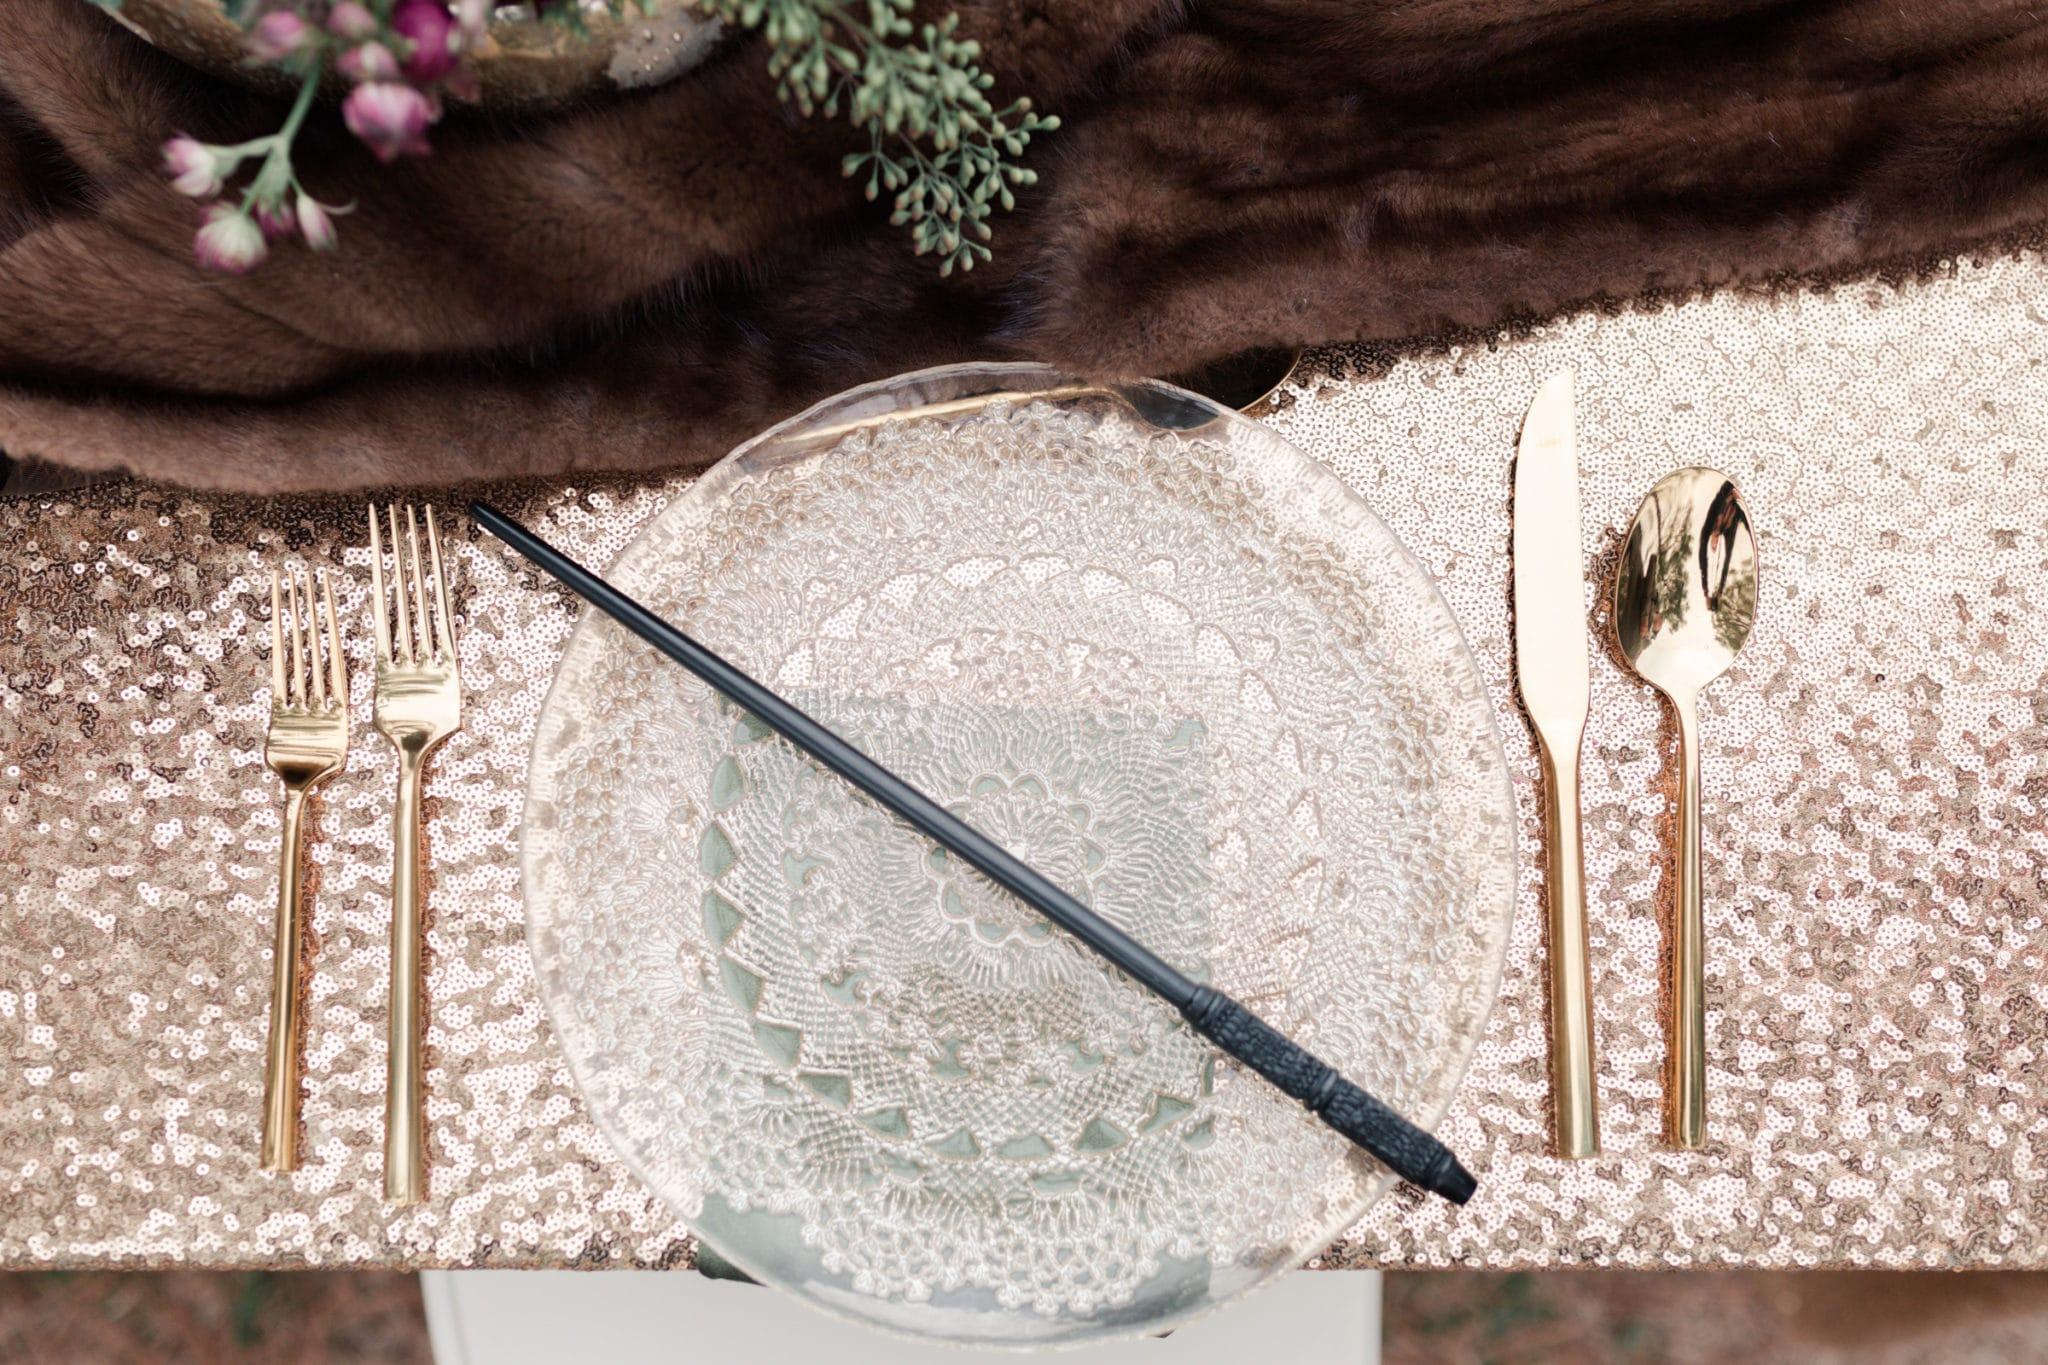 Harry Potter wand on a tablescape at Arrowhead Hill in Magnolia Texas captured by Swish and Click Photography